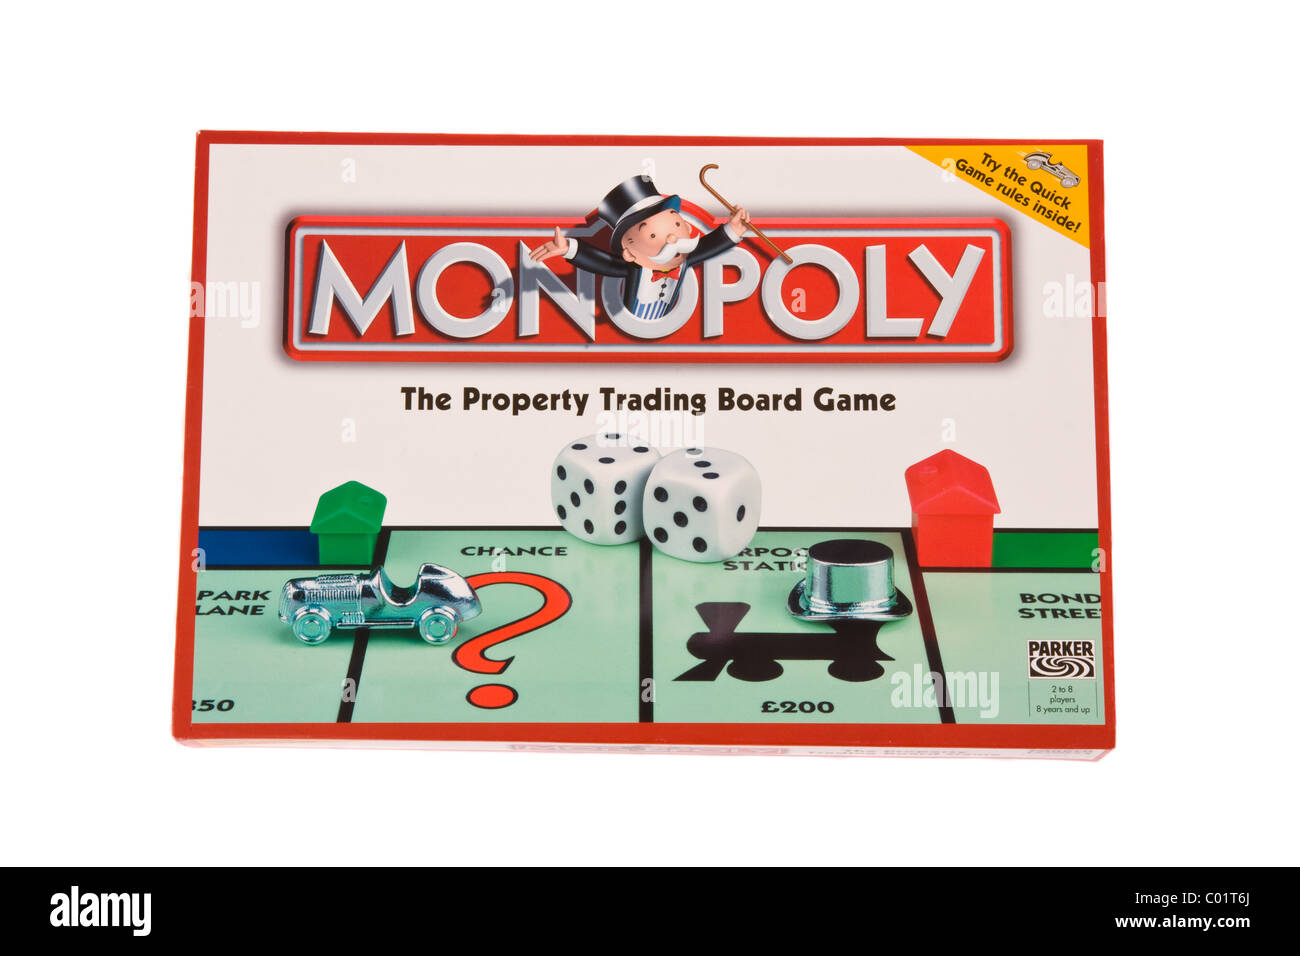 The box for the board game Monopoly. - Stock Image